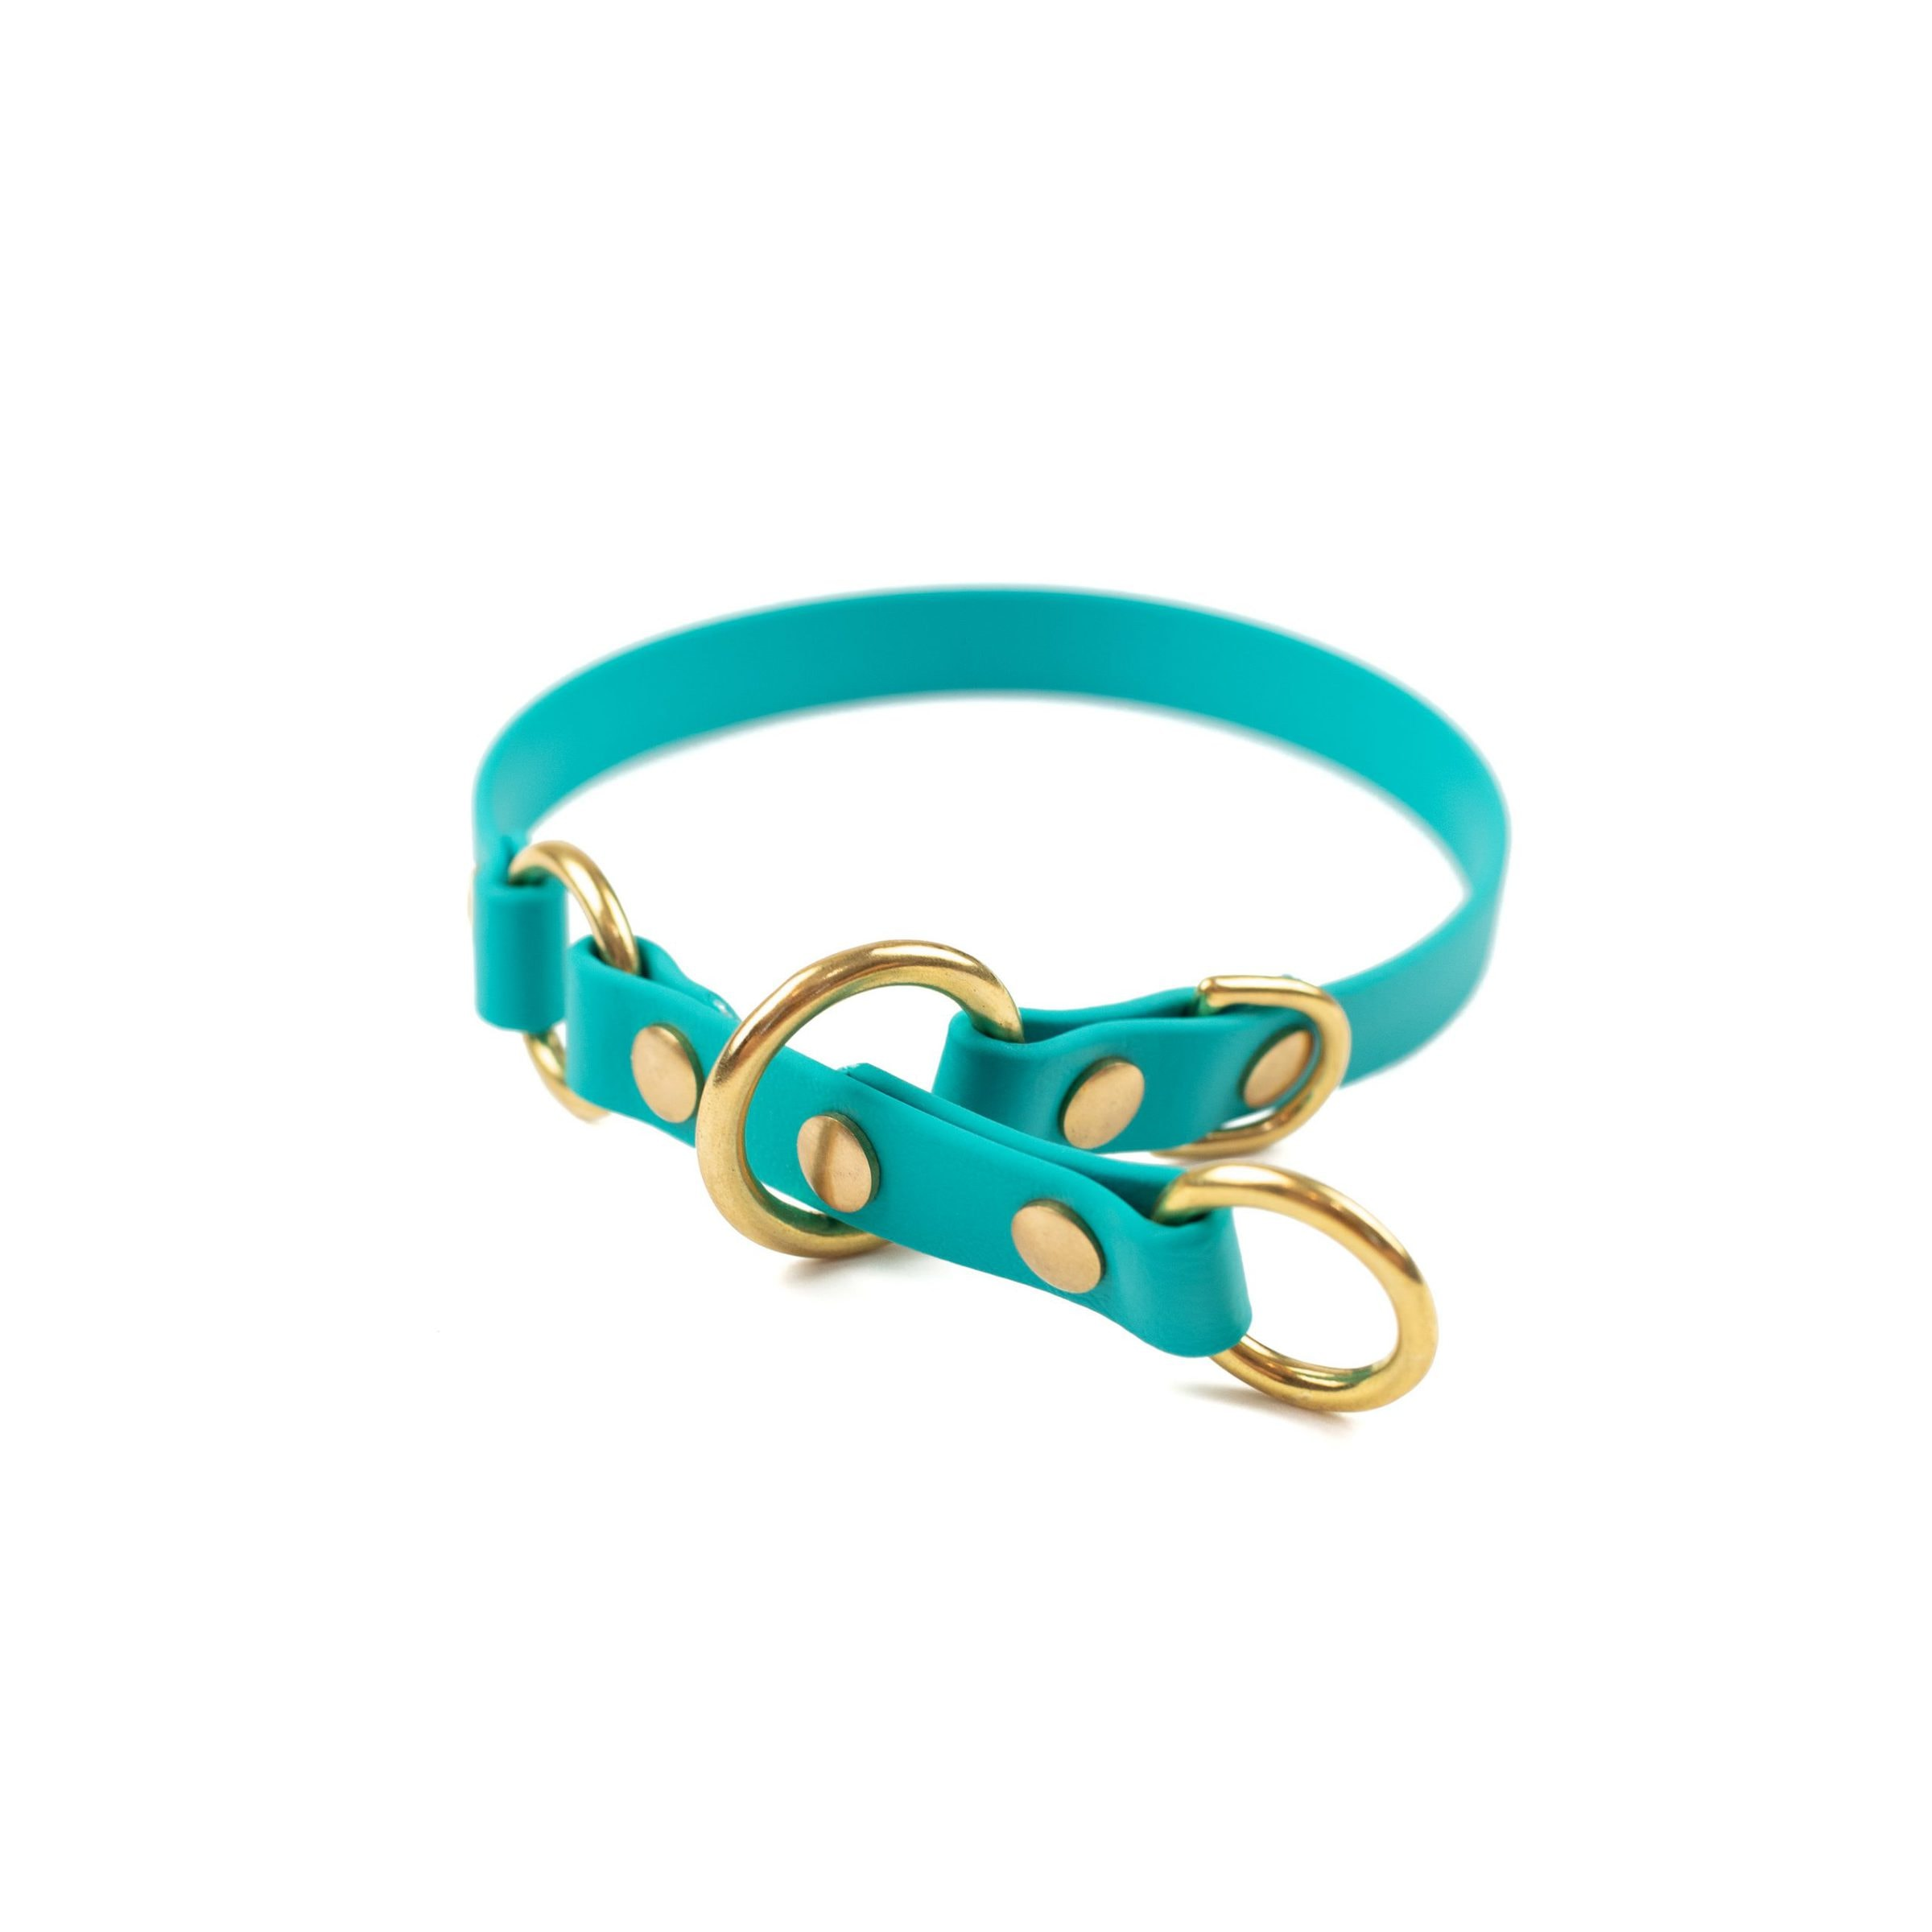 """Teal and brass 5/8"""" o-ring limited slip collar"""